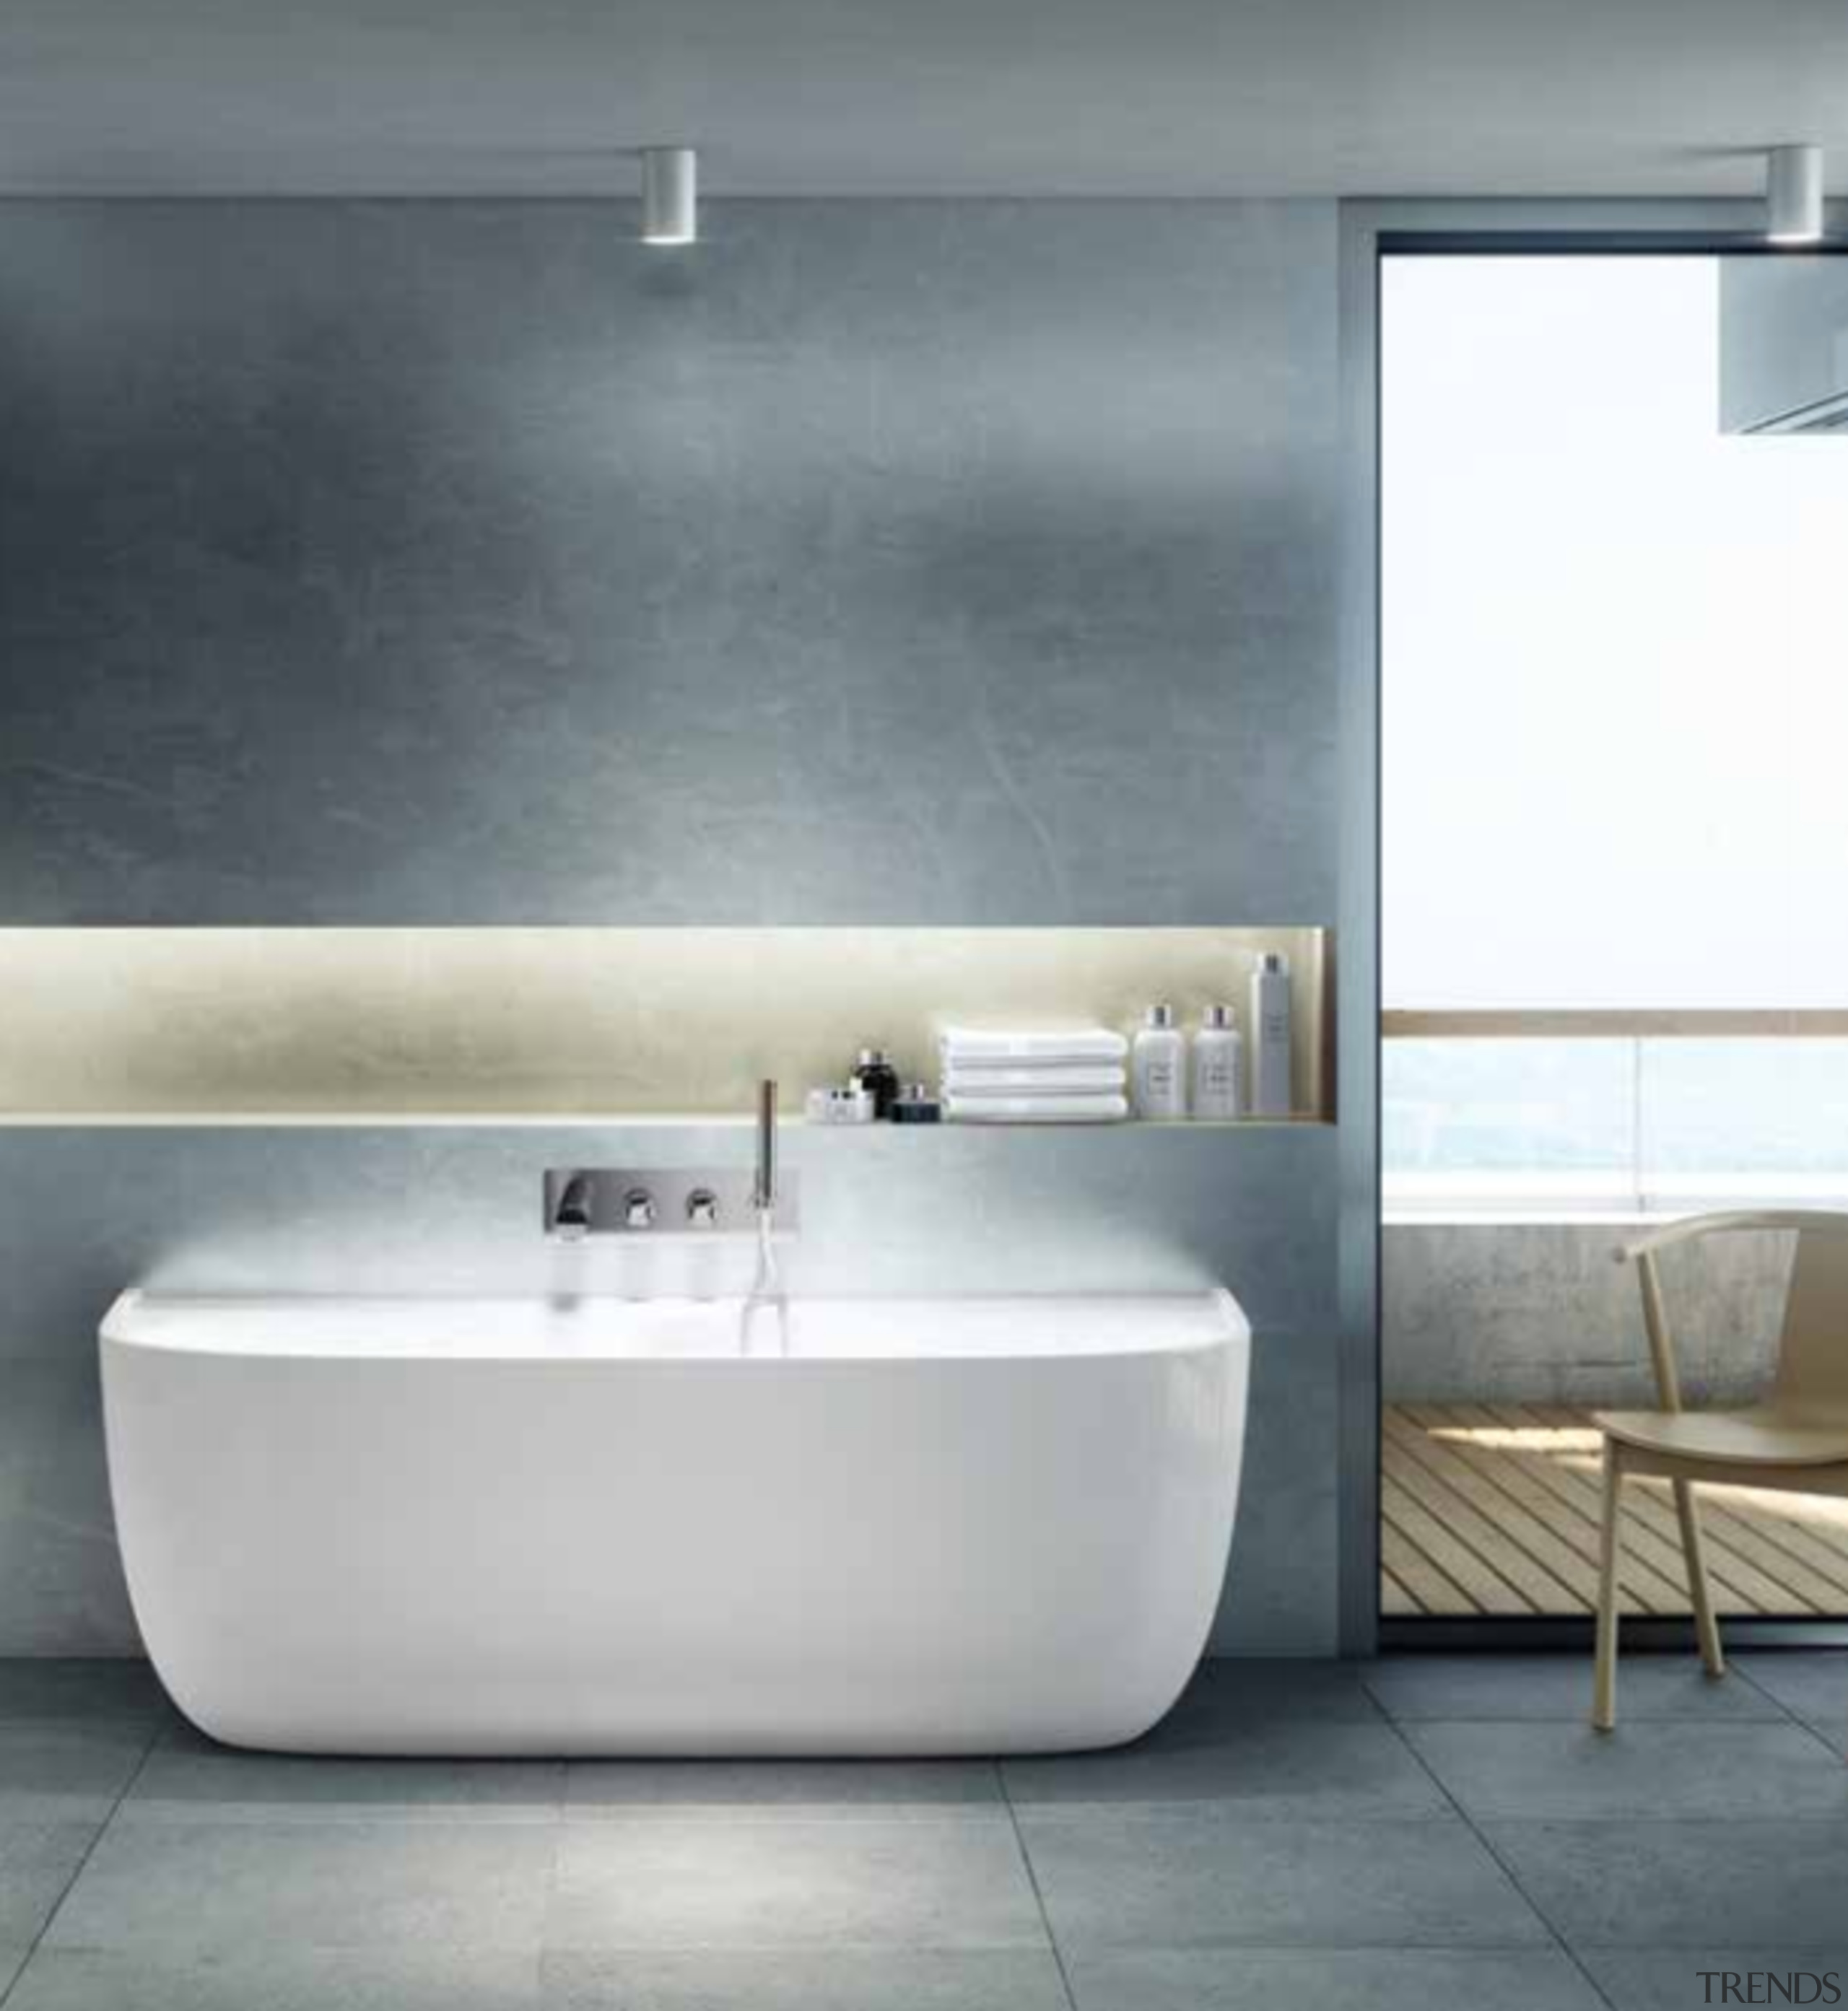 Showered in great ideas - architecture | bathroom architecture, bathroom, bathroom accessory, bathroom sink, bathtub, bidet, ceramic, floor, flooring, furniture, interior design, material property, plumbing fixture, property, room, sink, tap, tile, wall, gray